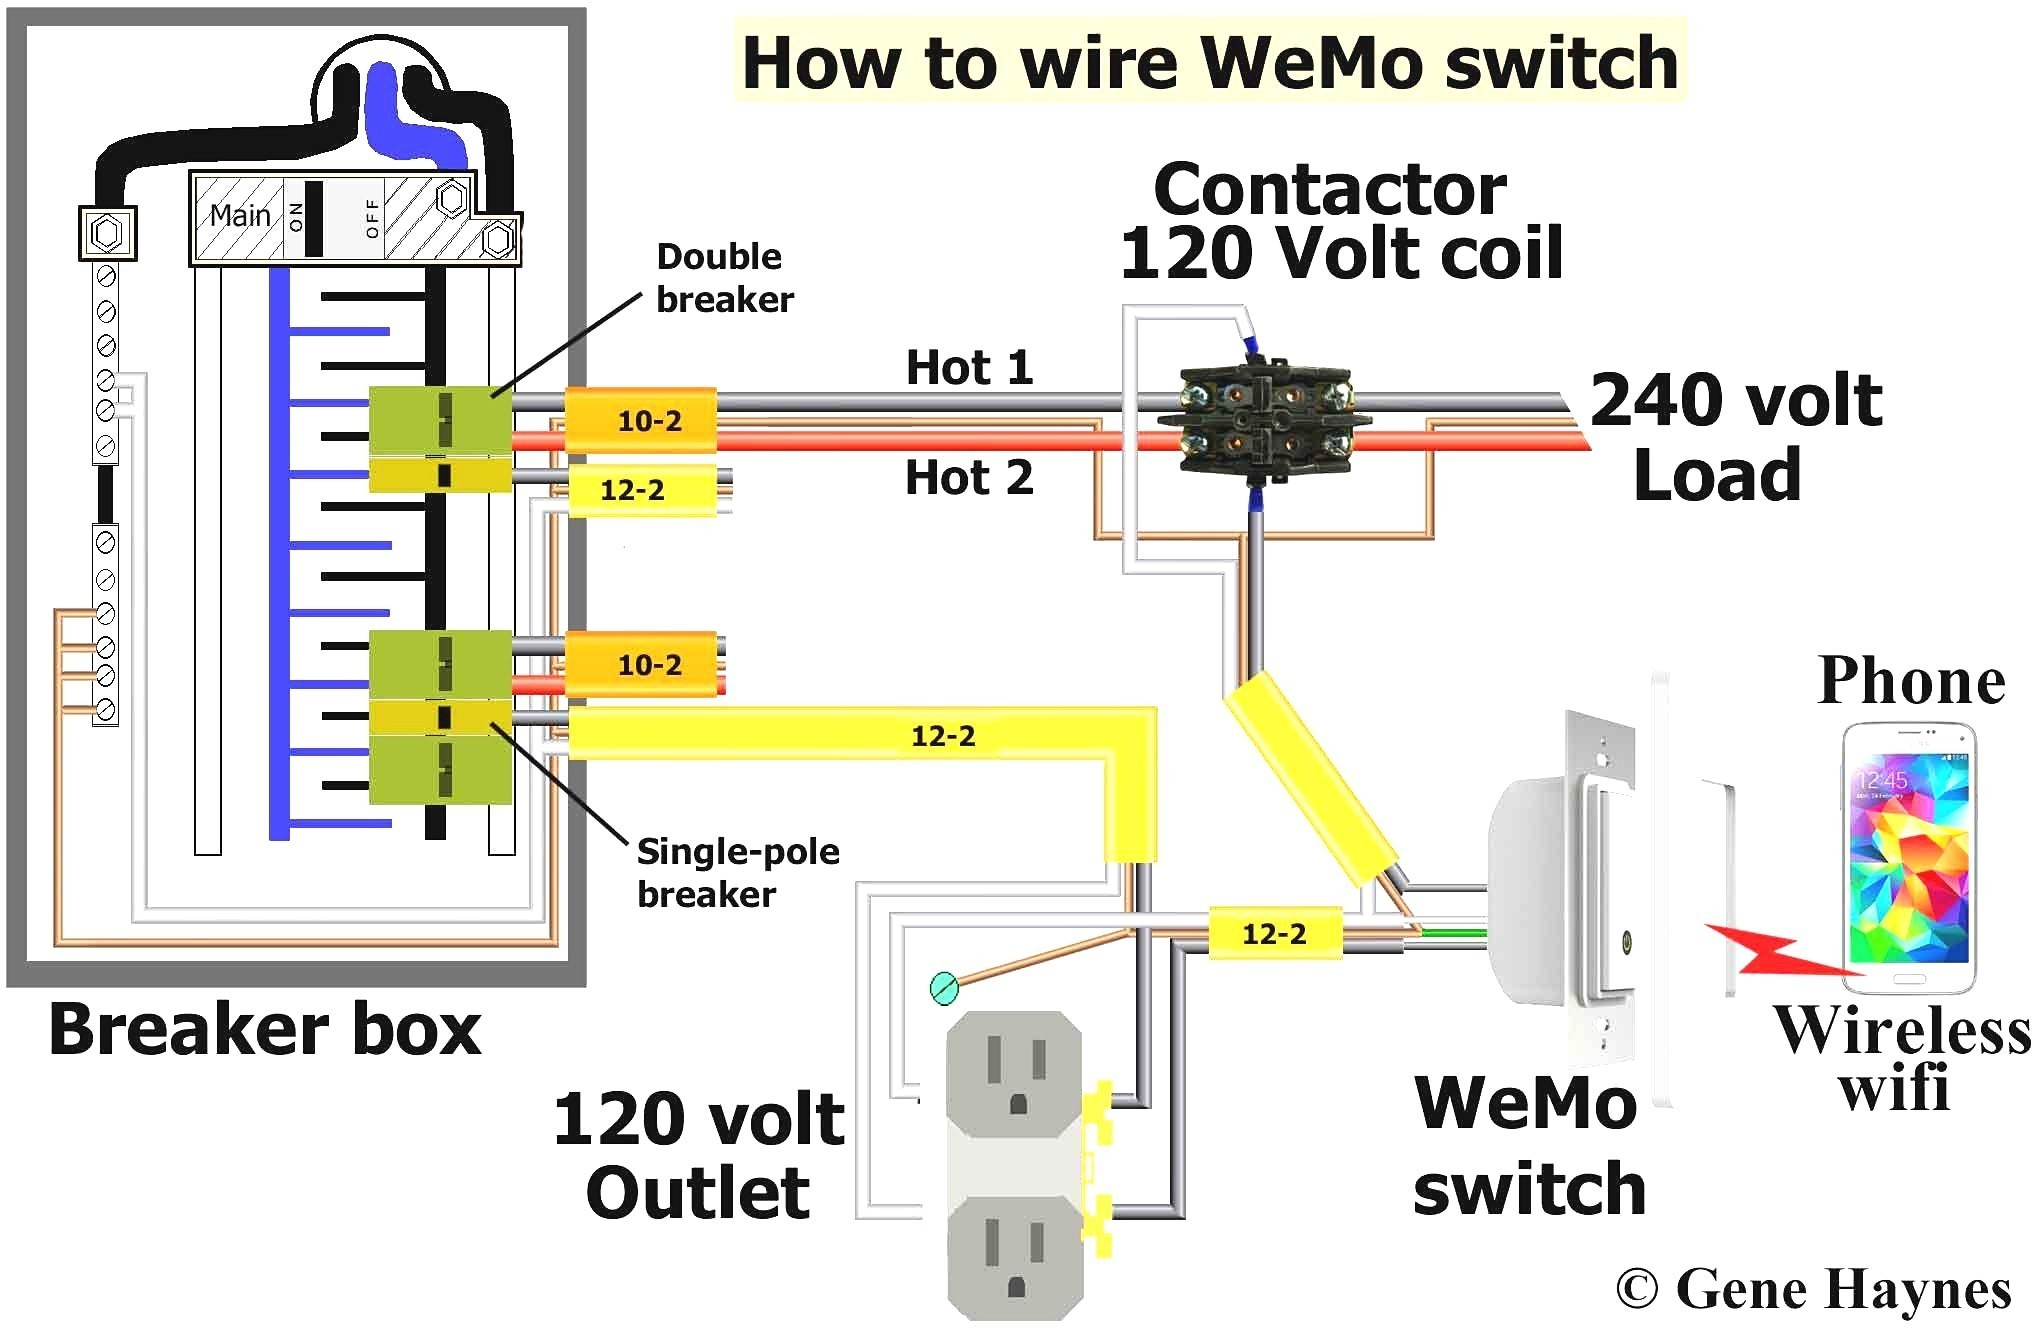 2 Pole Wiring Diagram -Bathroom Extractor Fan Wiring Diagram | Begeboy Wiring  Diagram SourceBegeboy Wiring Diagram Source